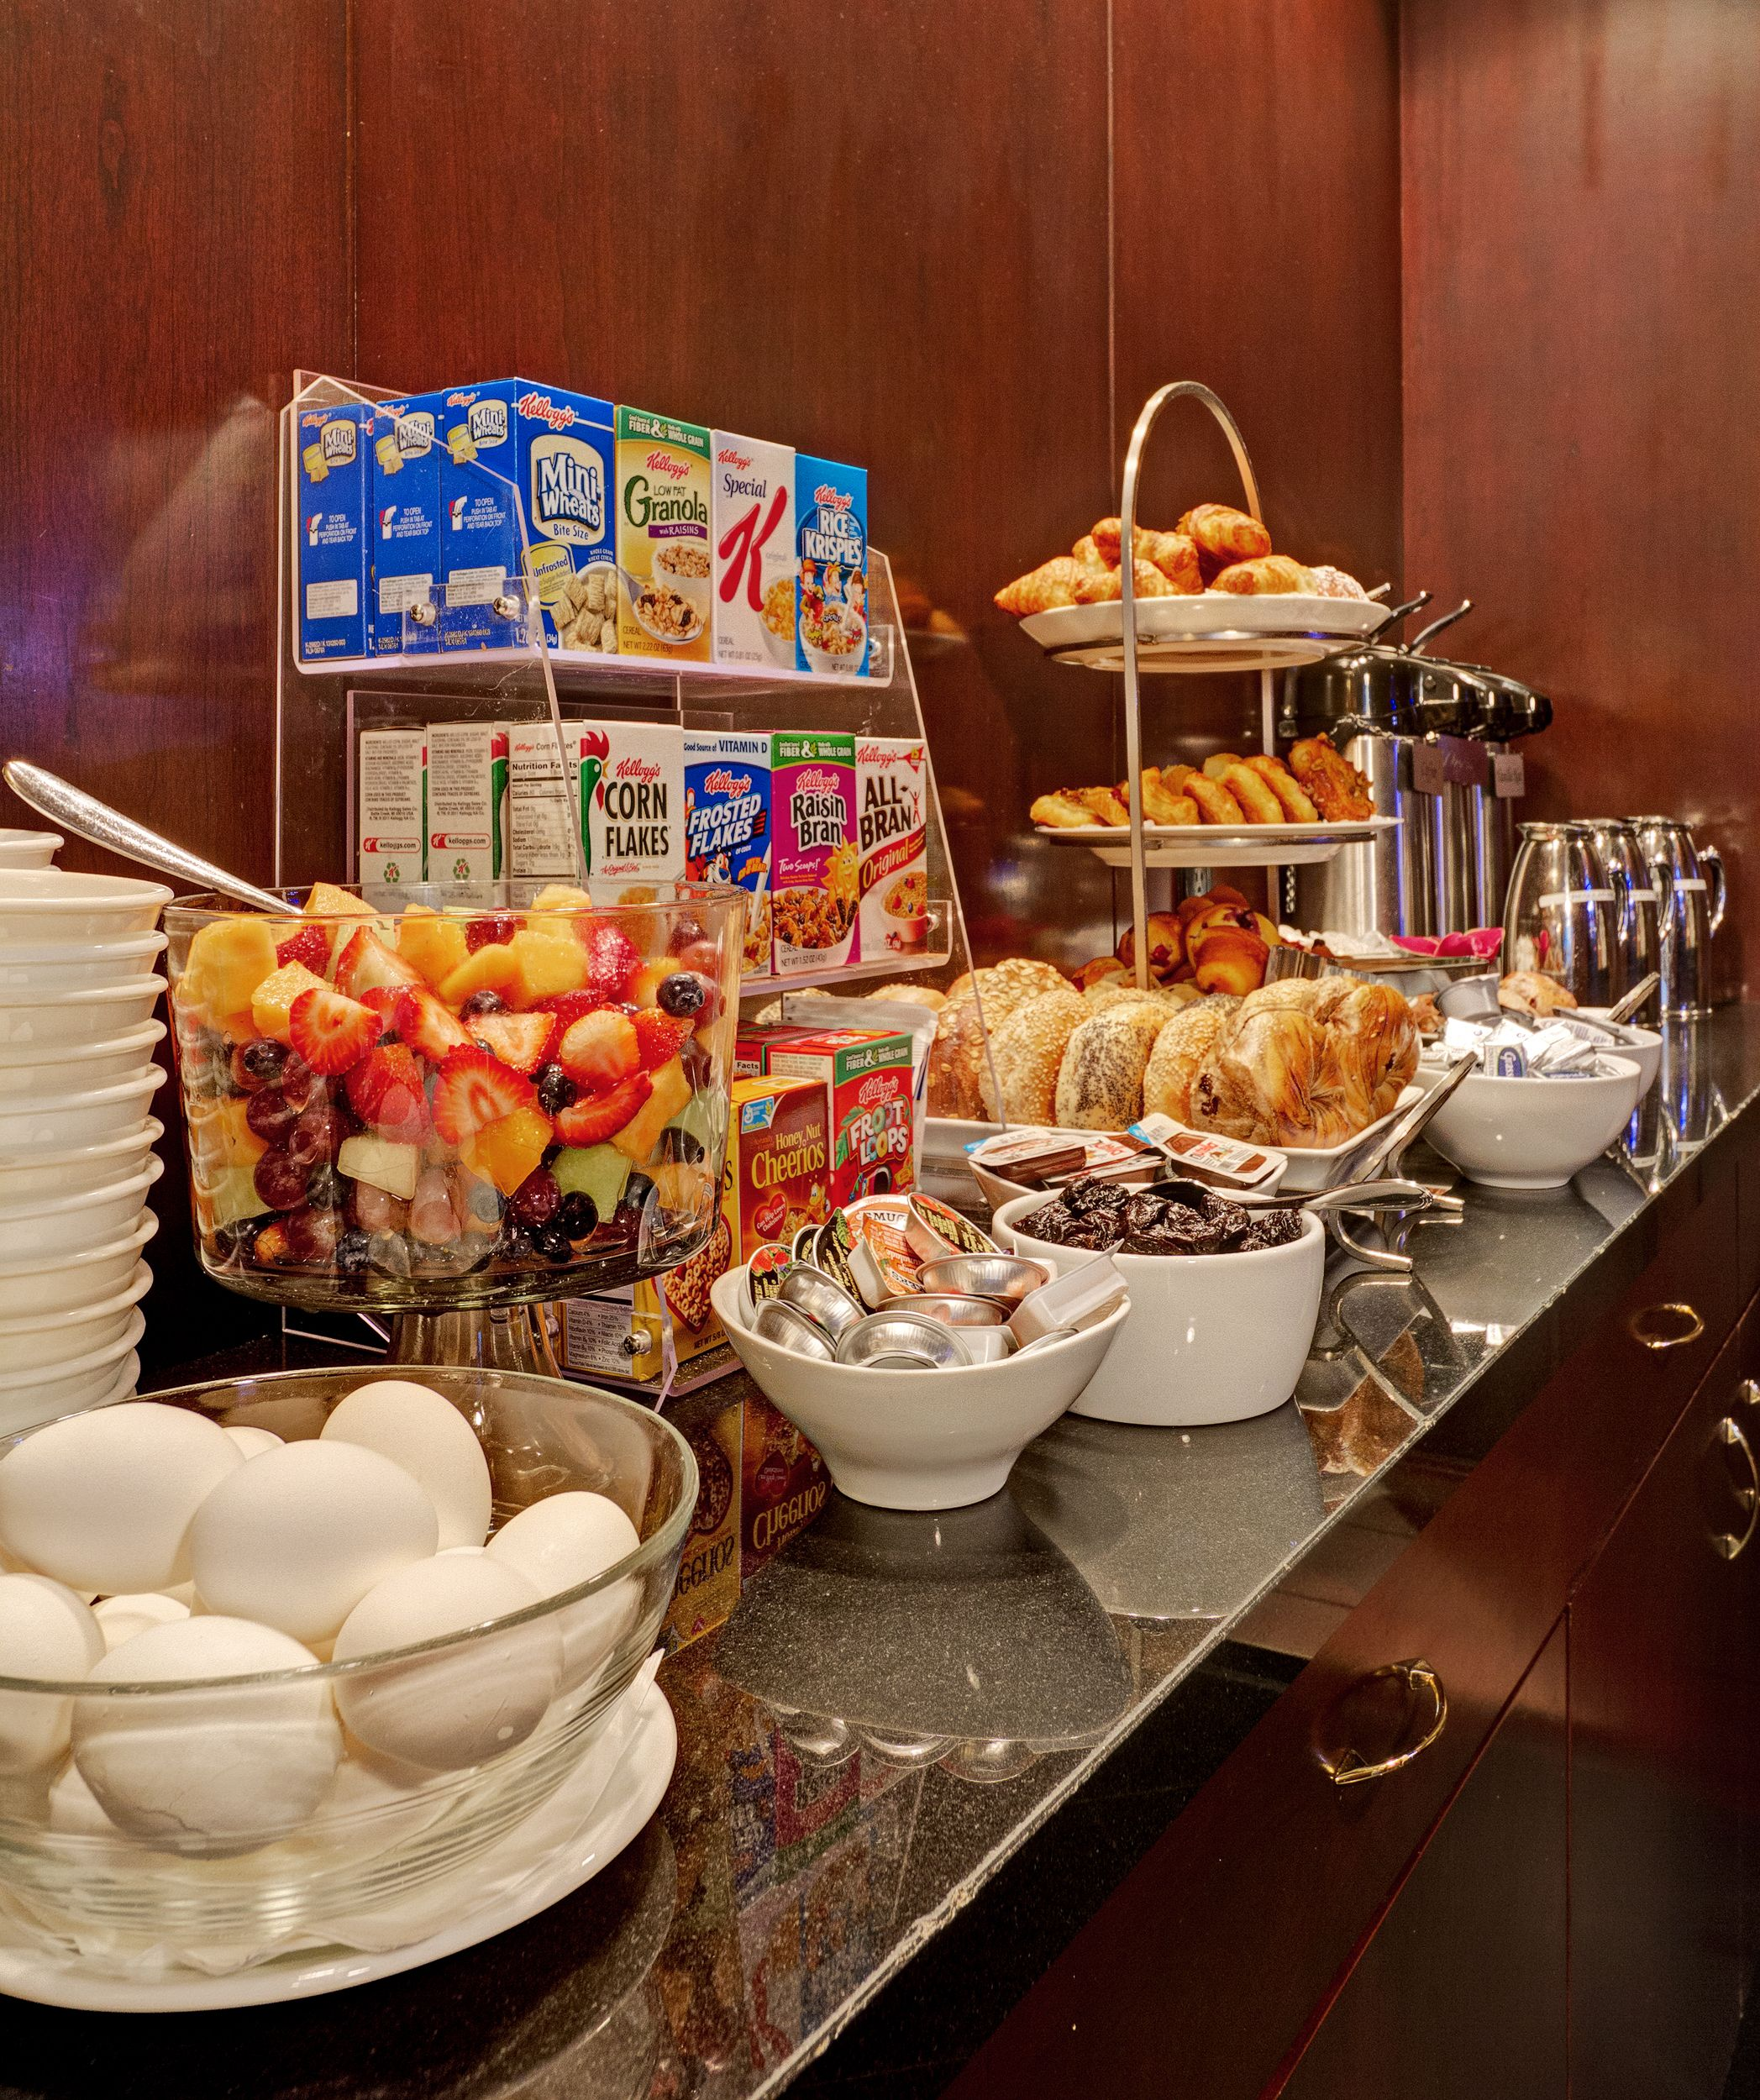 The Library Hotel S Complimentary Continental Breakfast Buffet Hard Boiled Eggs Yogurts Hot Oatmeal